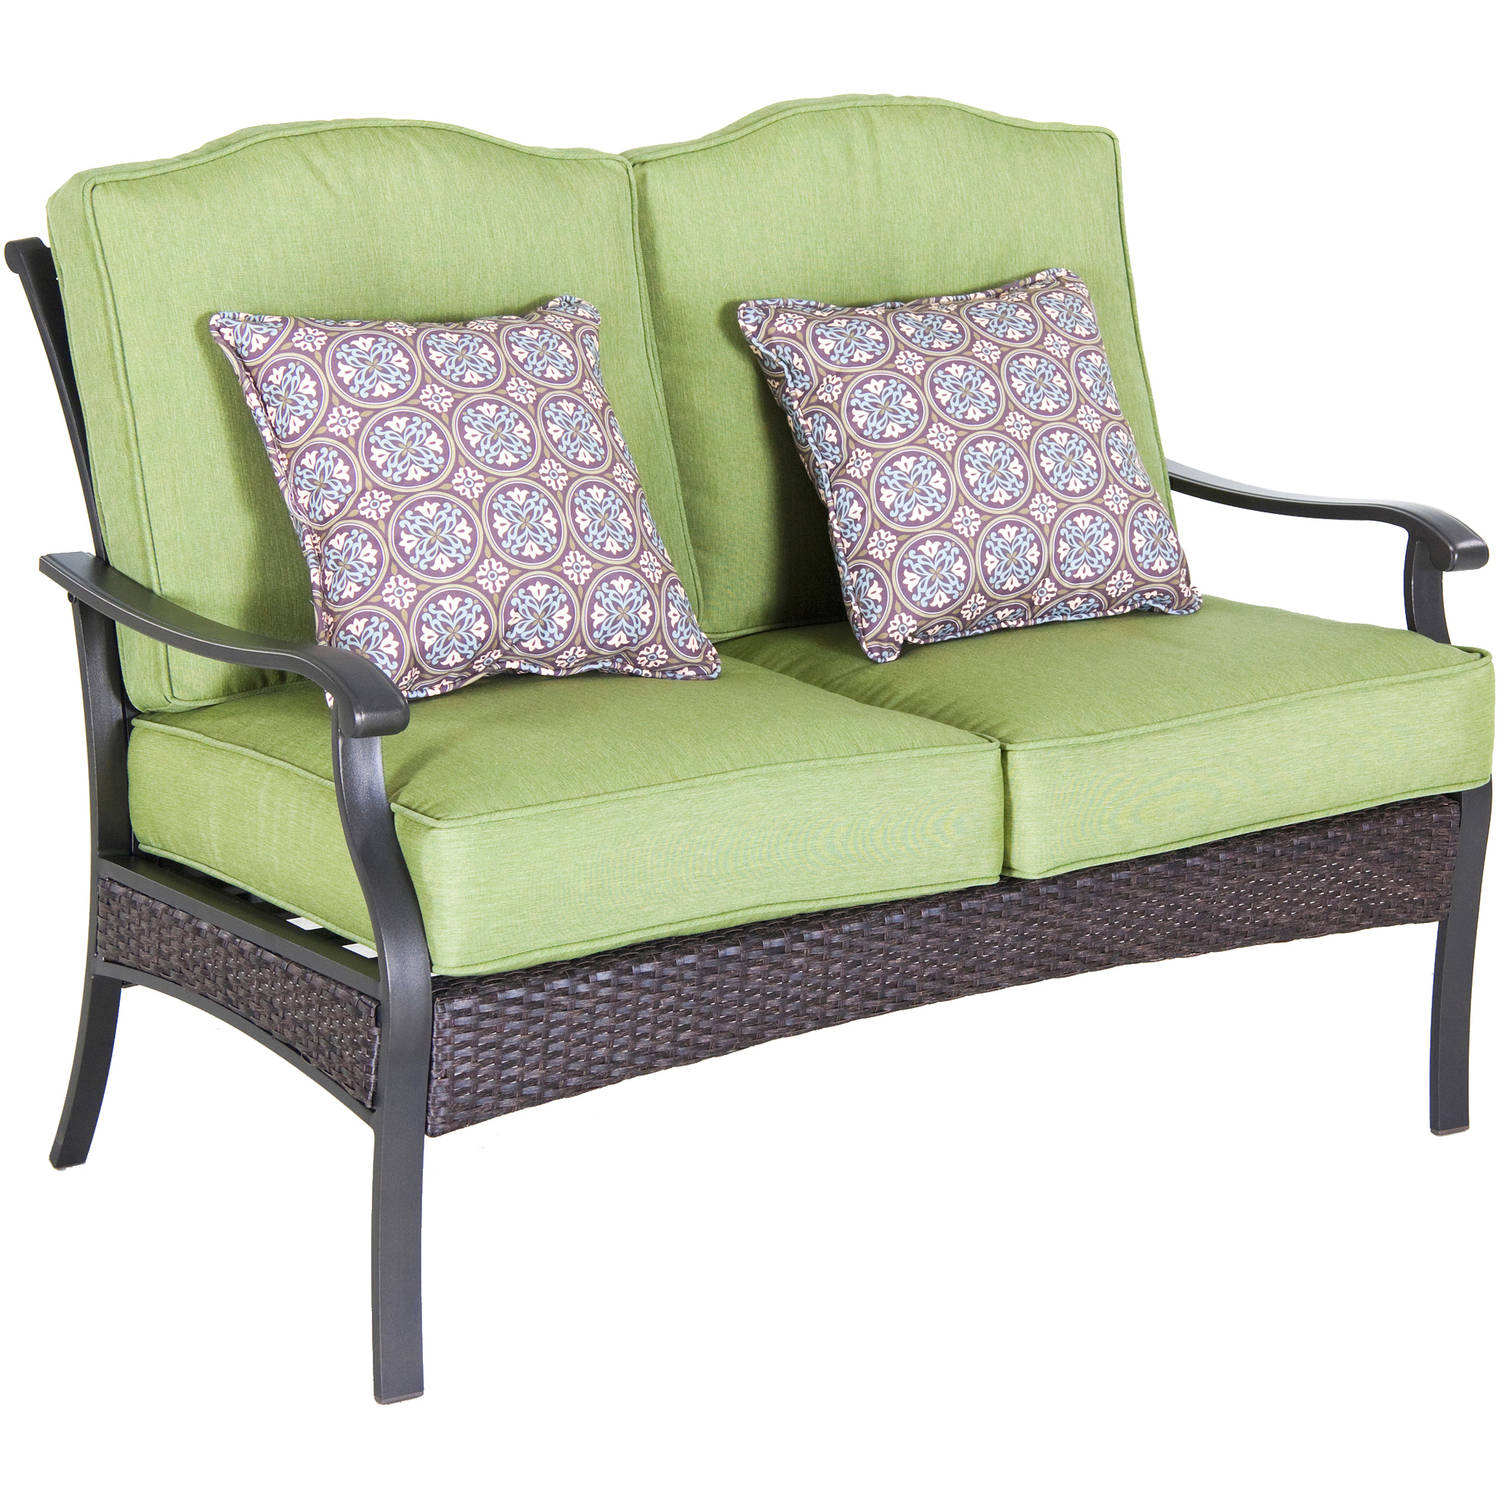 Better homes and gardens colebrook rocking chair better for Better homes and gardens azalea ridge chaise lounge